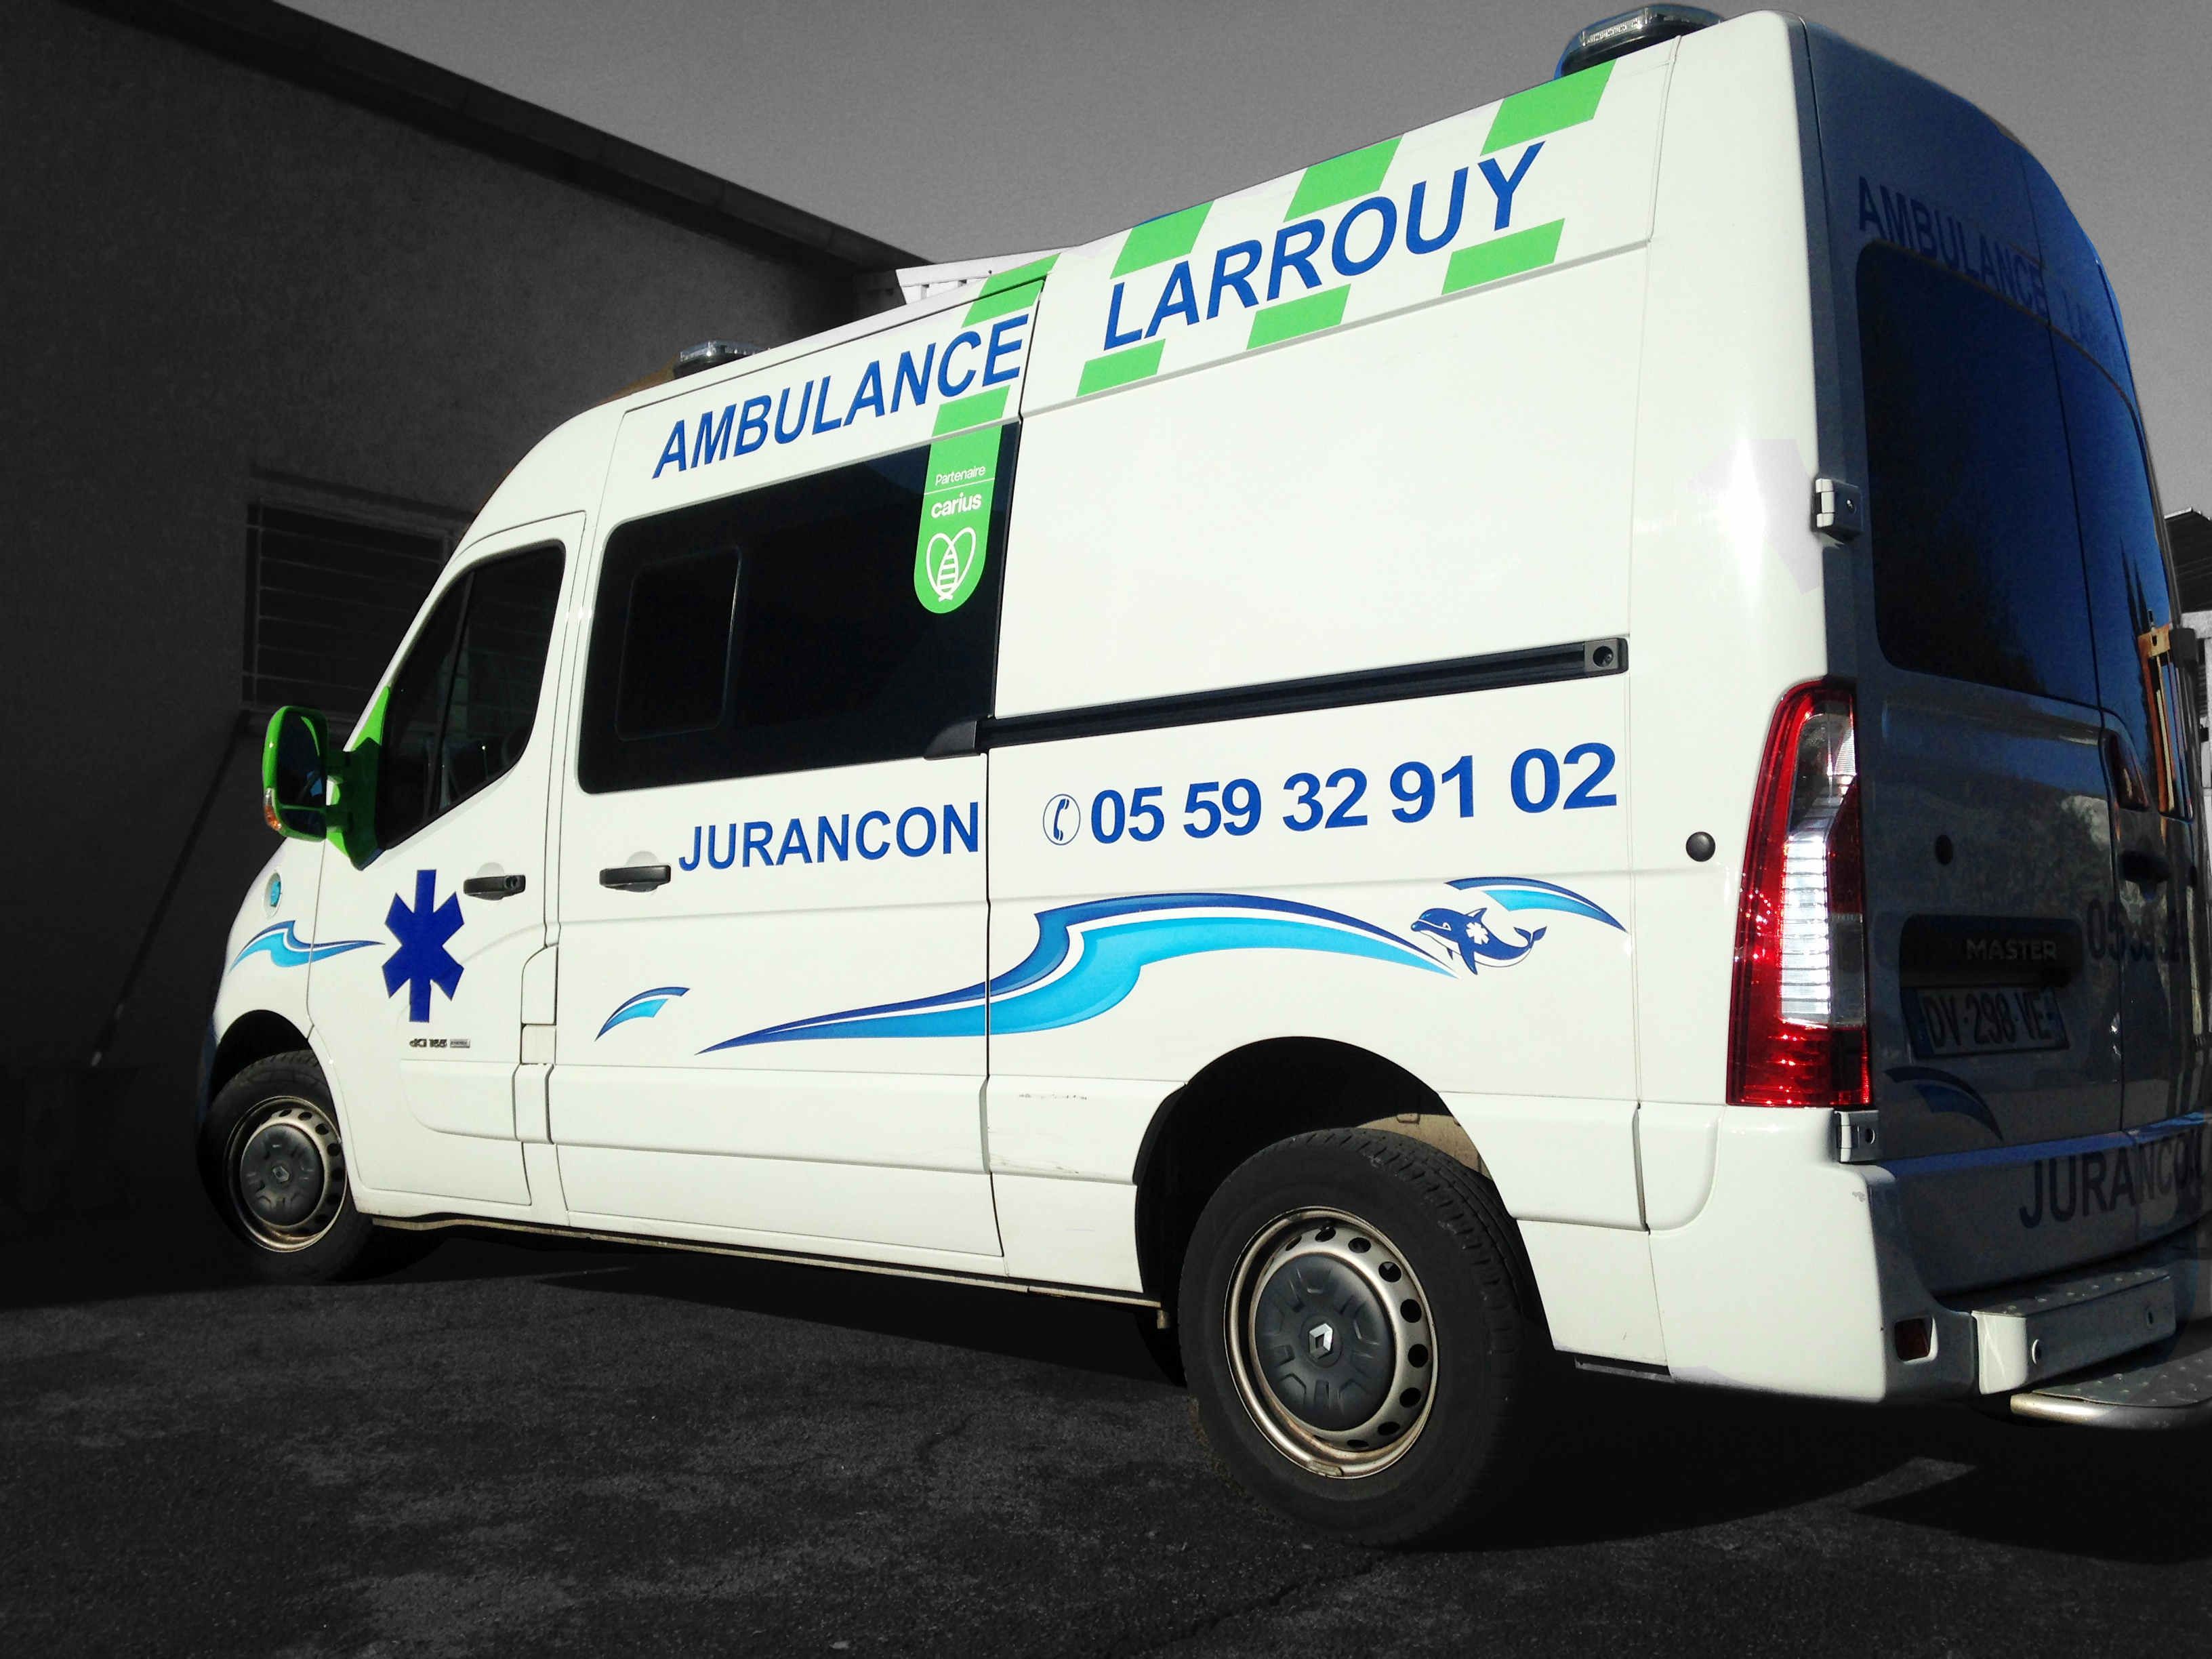 ambulances_larrouy